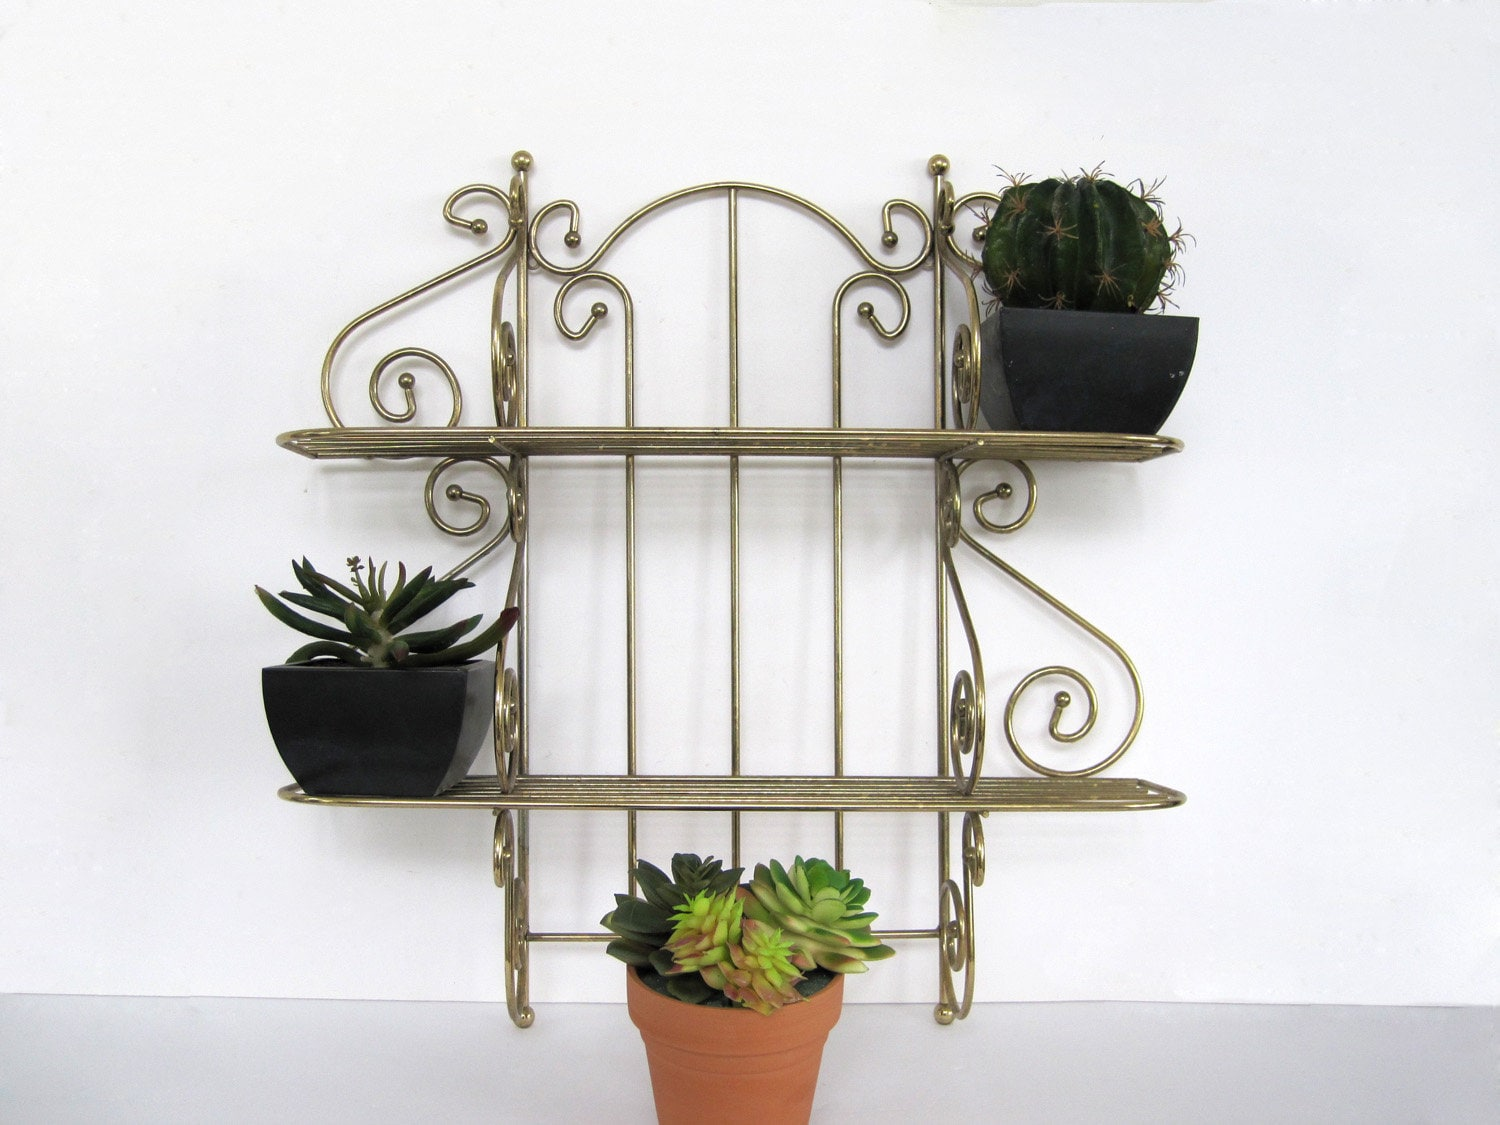 Vintage Metal Wall Shelf Two Tier Bathroom Plant Nursery Strong Gold Wall  Shelves Tiered